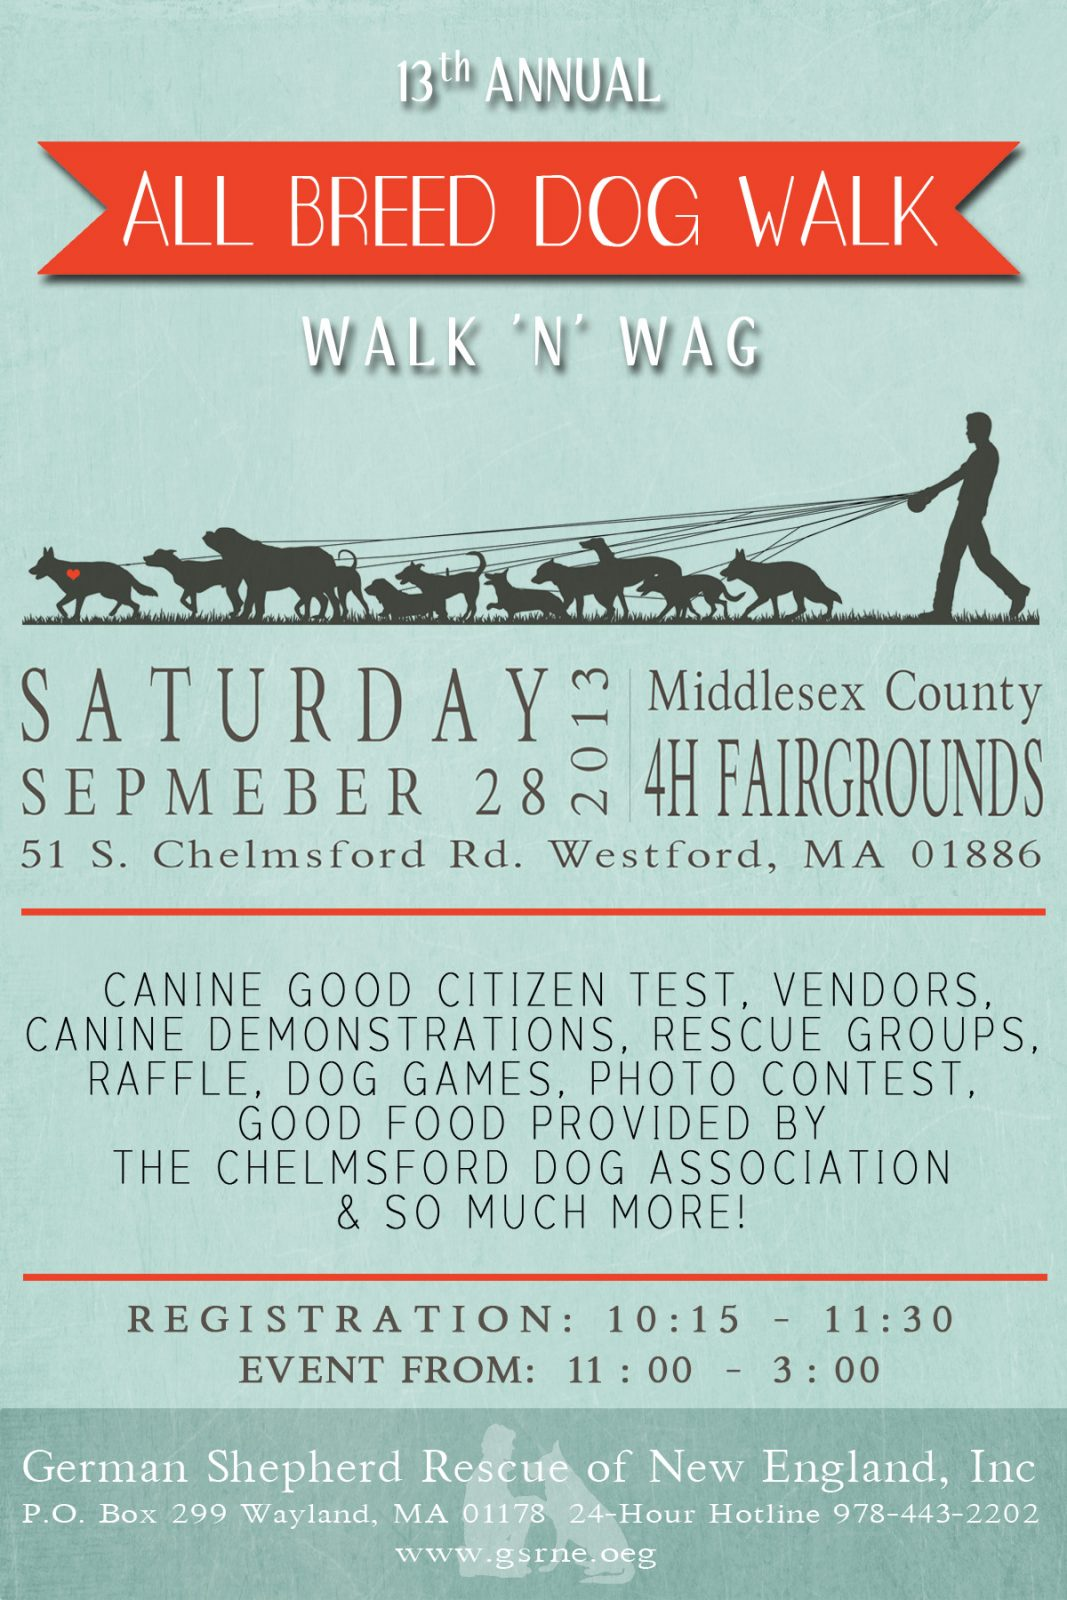 13th Annual Walk n' Wag